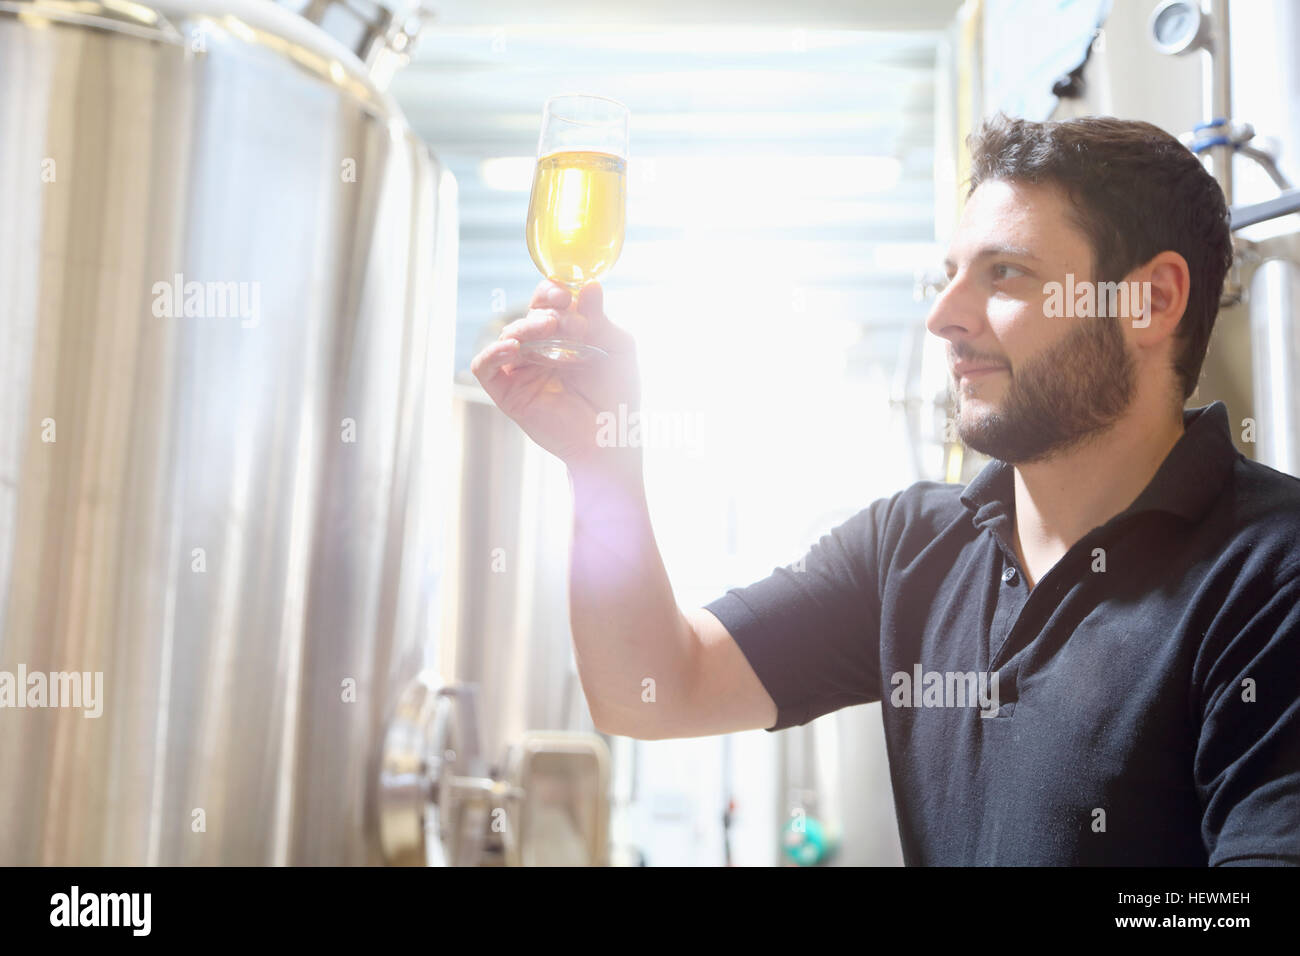 Worker in brewery inspecting beer at last stage of brewing - Stock Image